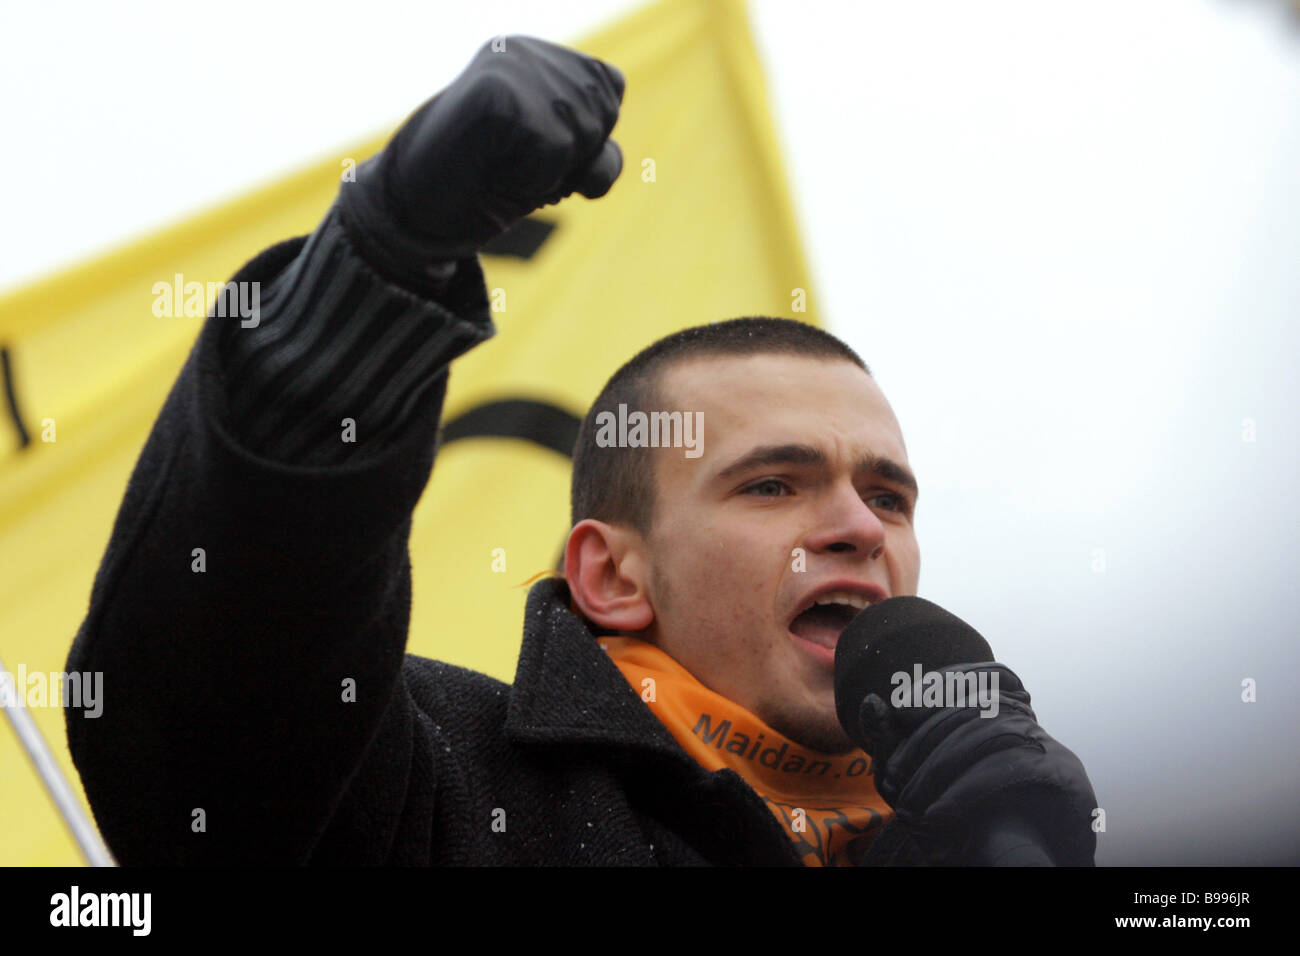 A rally gathered in Pushkin Square Moscow center in protest against Russian authorities social policies Ilya Yashin - Stock Image